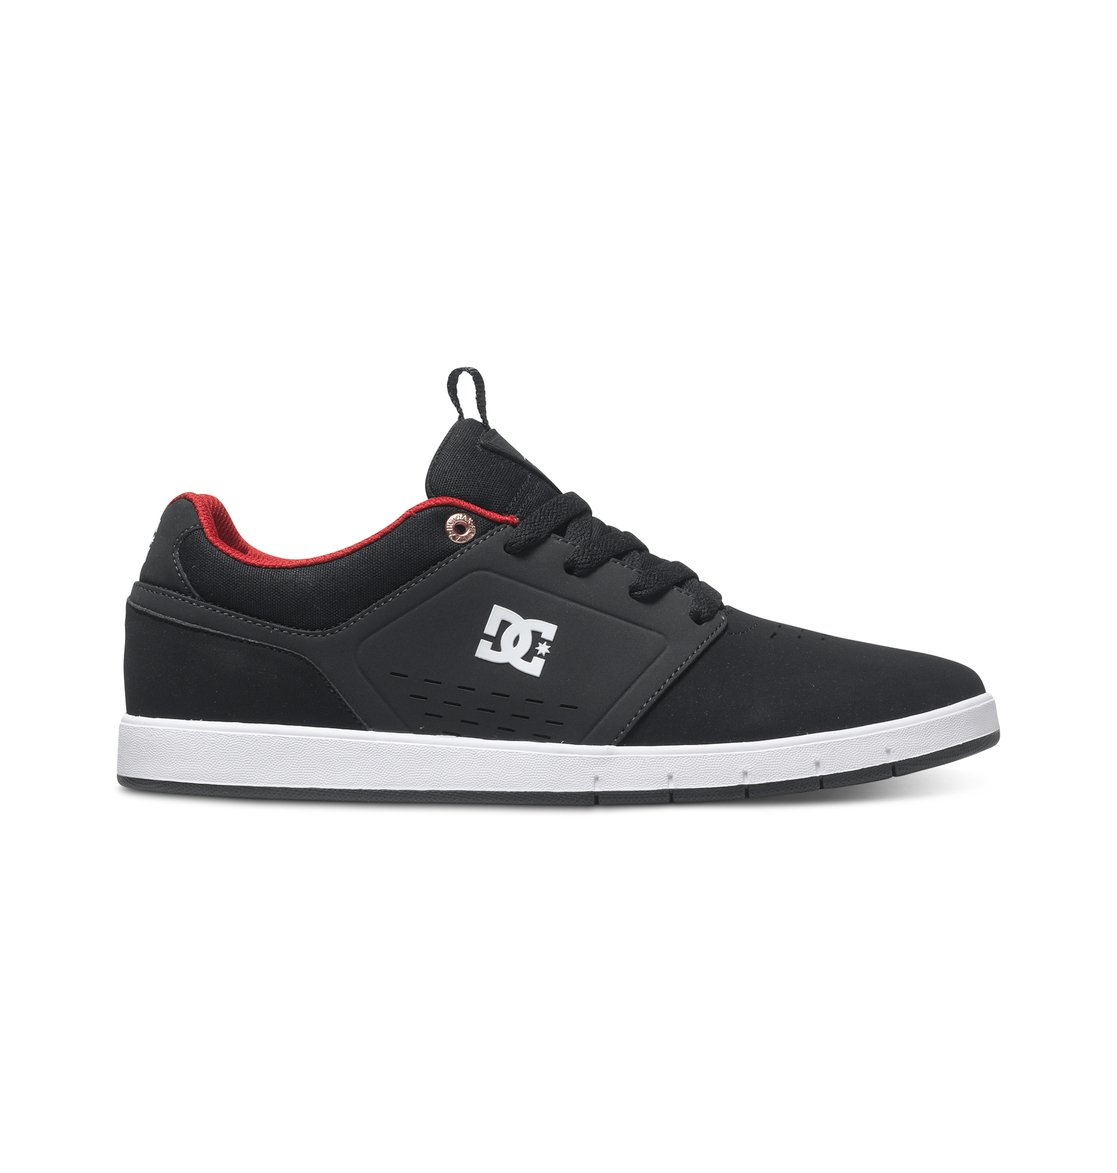 Mens Dc Cole Signature Sneakers Black/Charcoal TJC23531